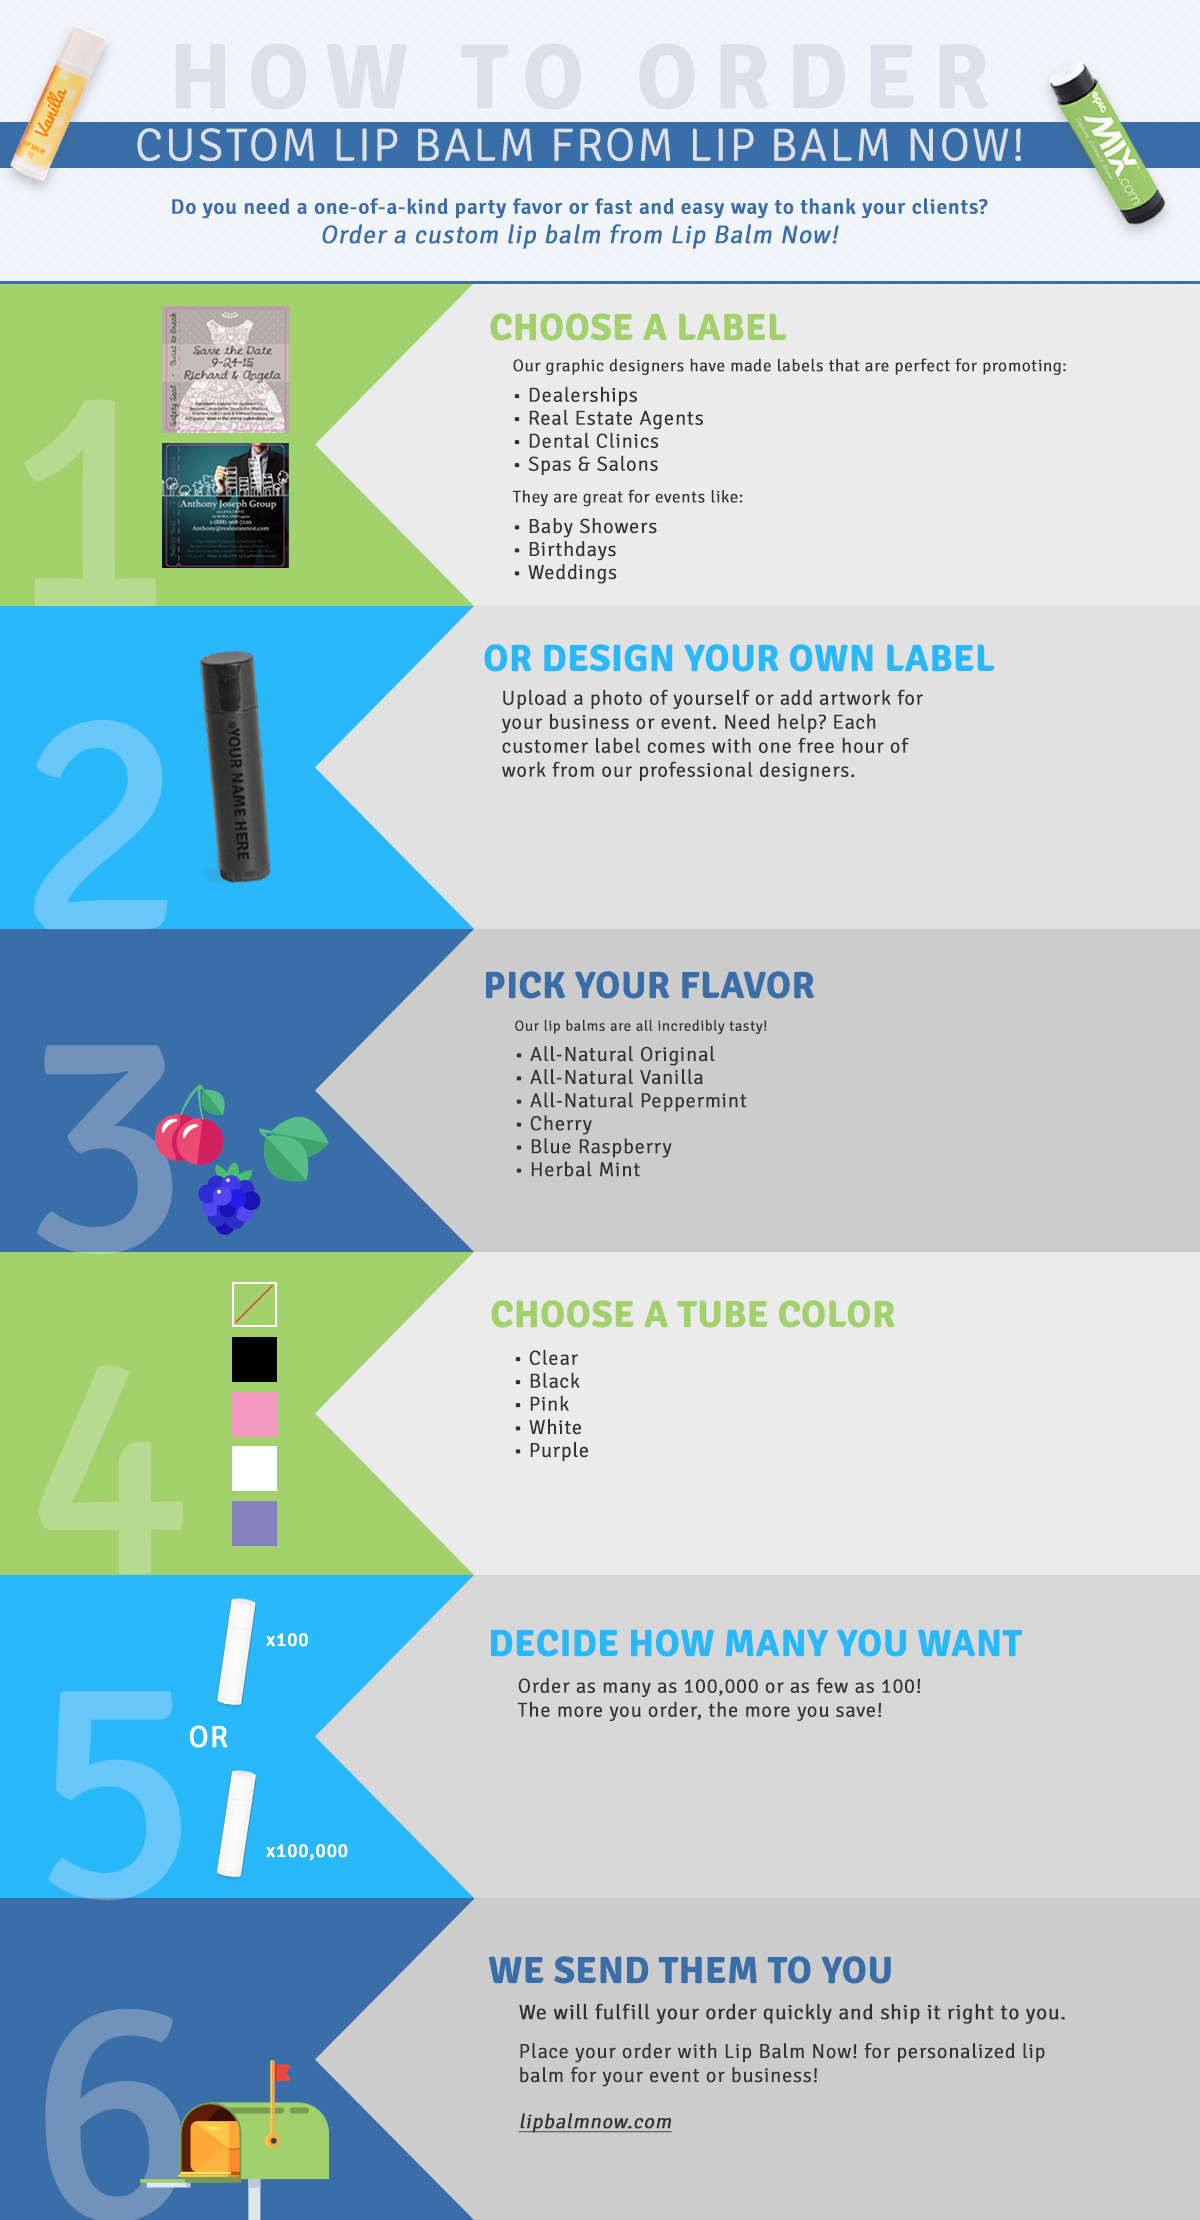 how-to-order-custom-lip-balm-from-lip-balm-now-v2.jpg